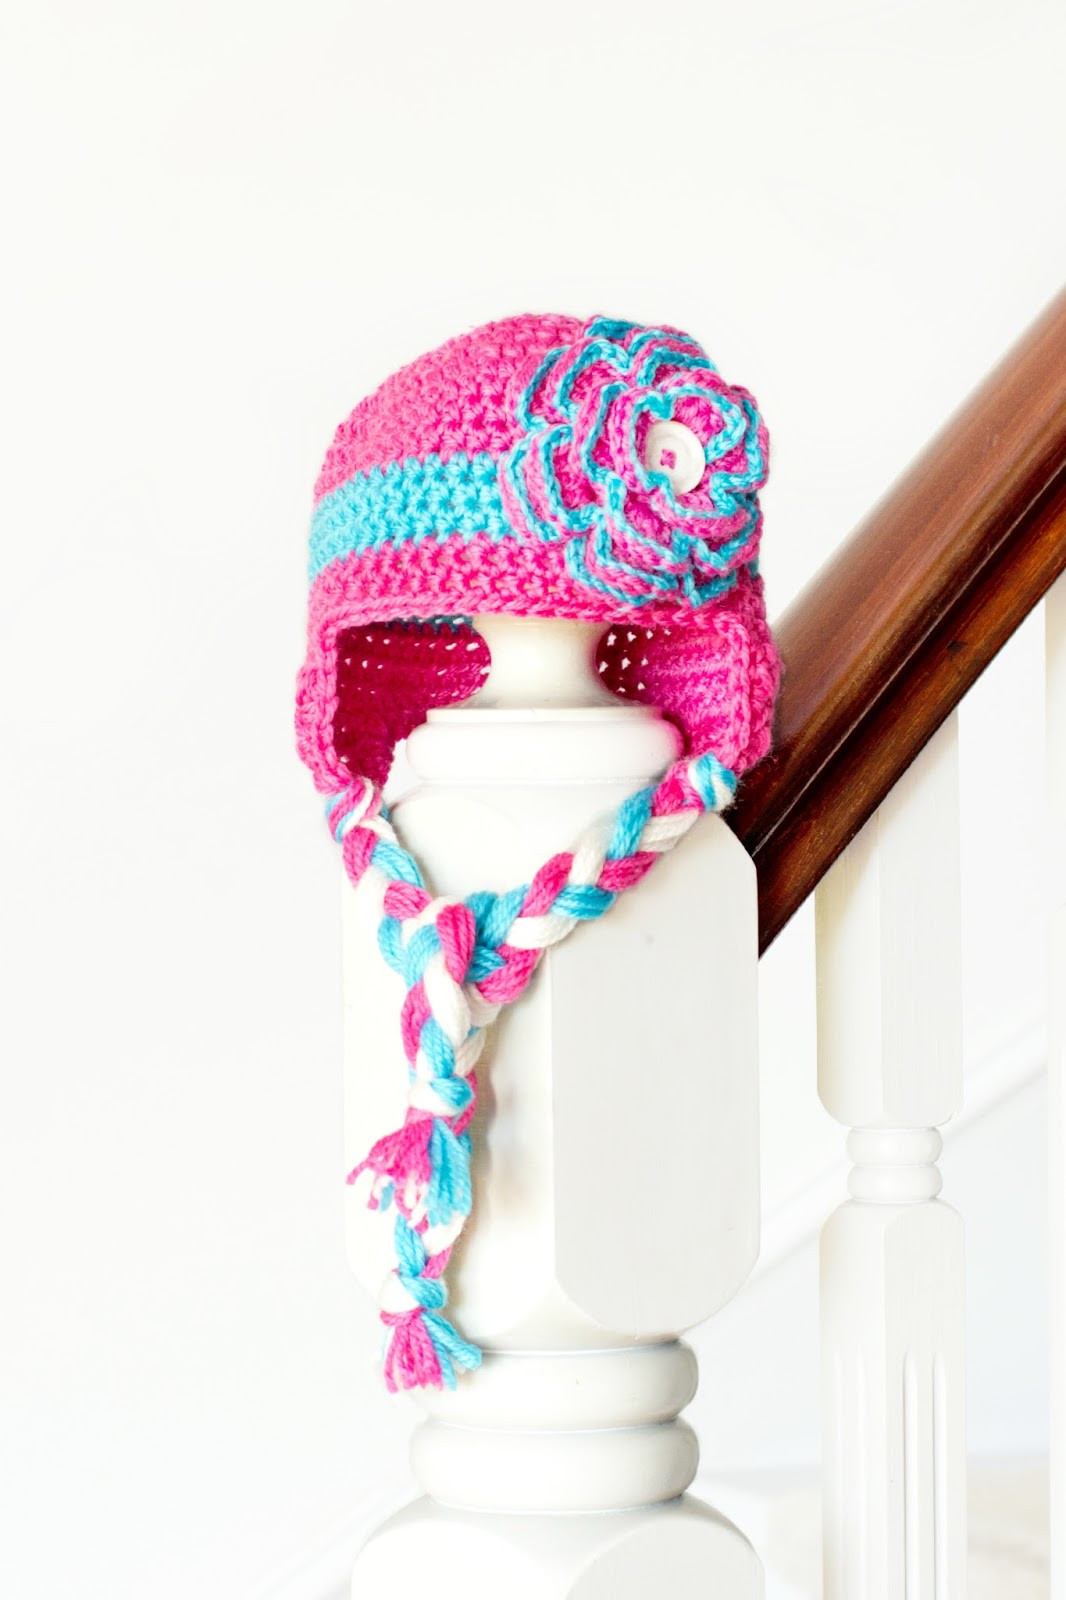 Lovely 41 Adorable Crochet Baby Hats & Patterns to Make Crochet ornament Patterns Of Beautiful 40 Pictures Crochet ornament Patterns